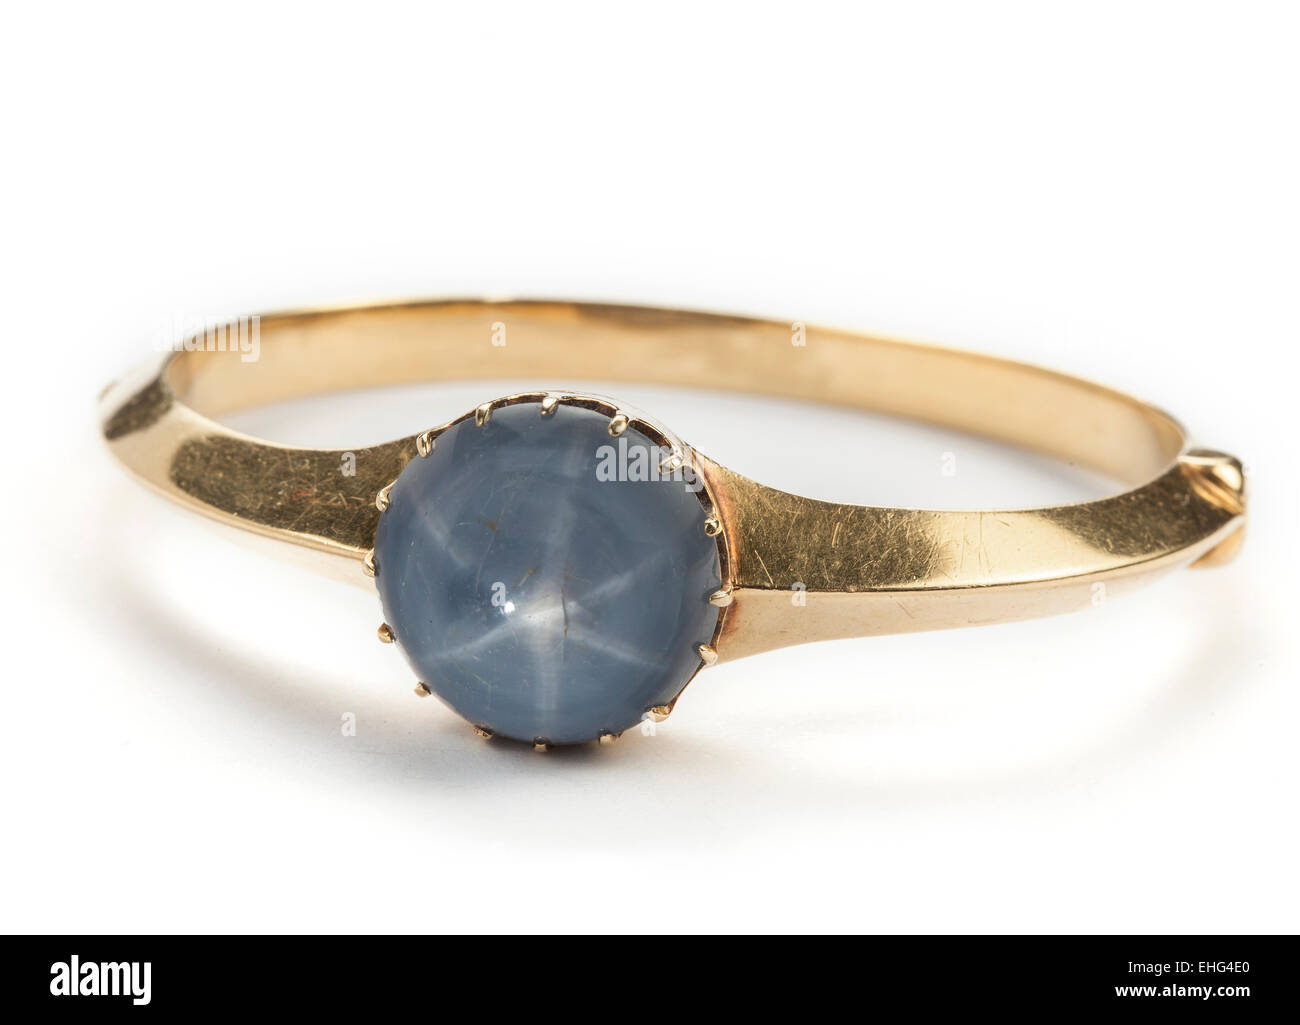 A star sapphire hinged gold bangle. - Stock Image